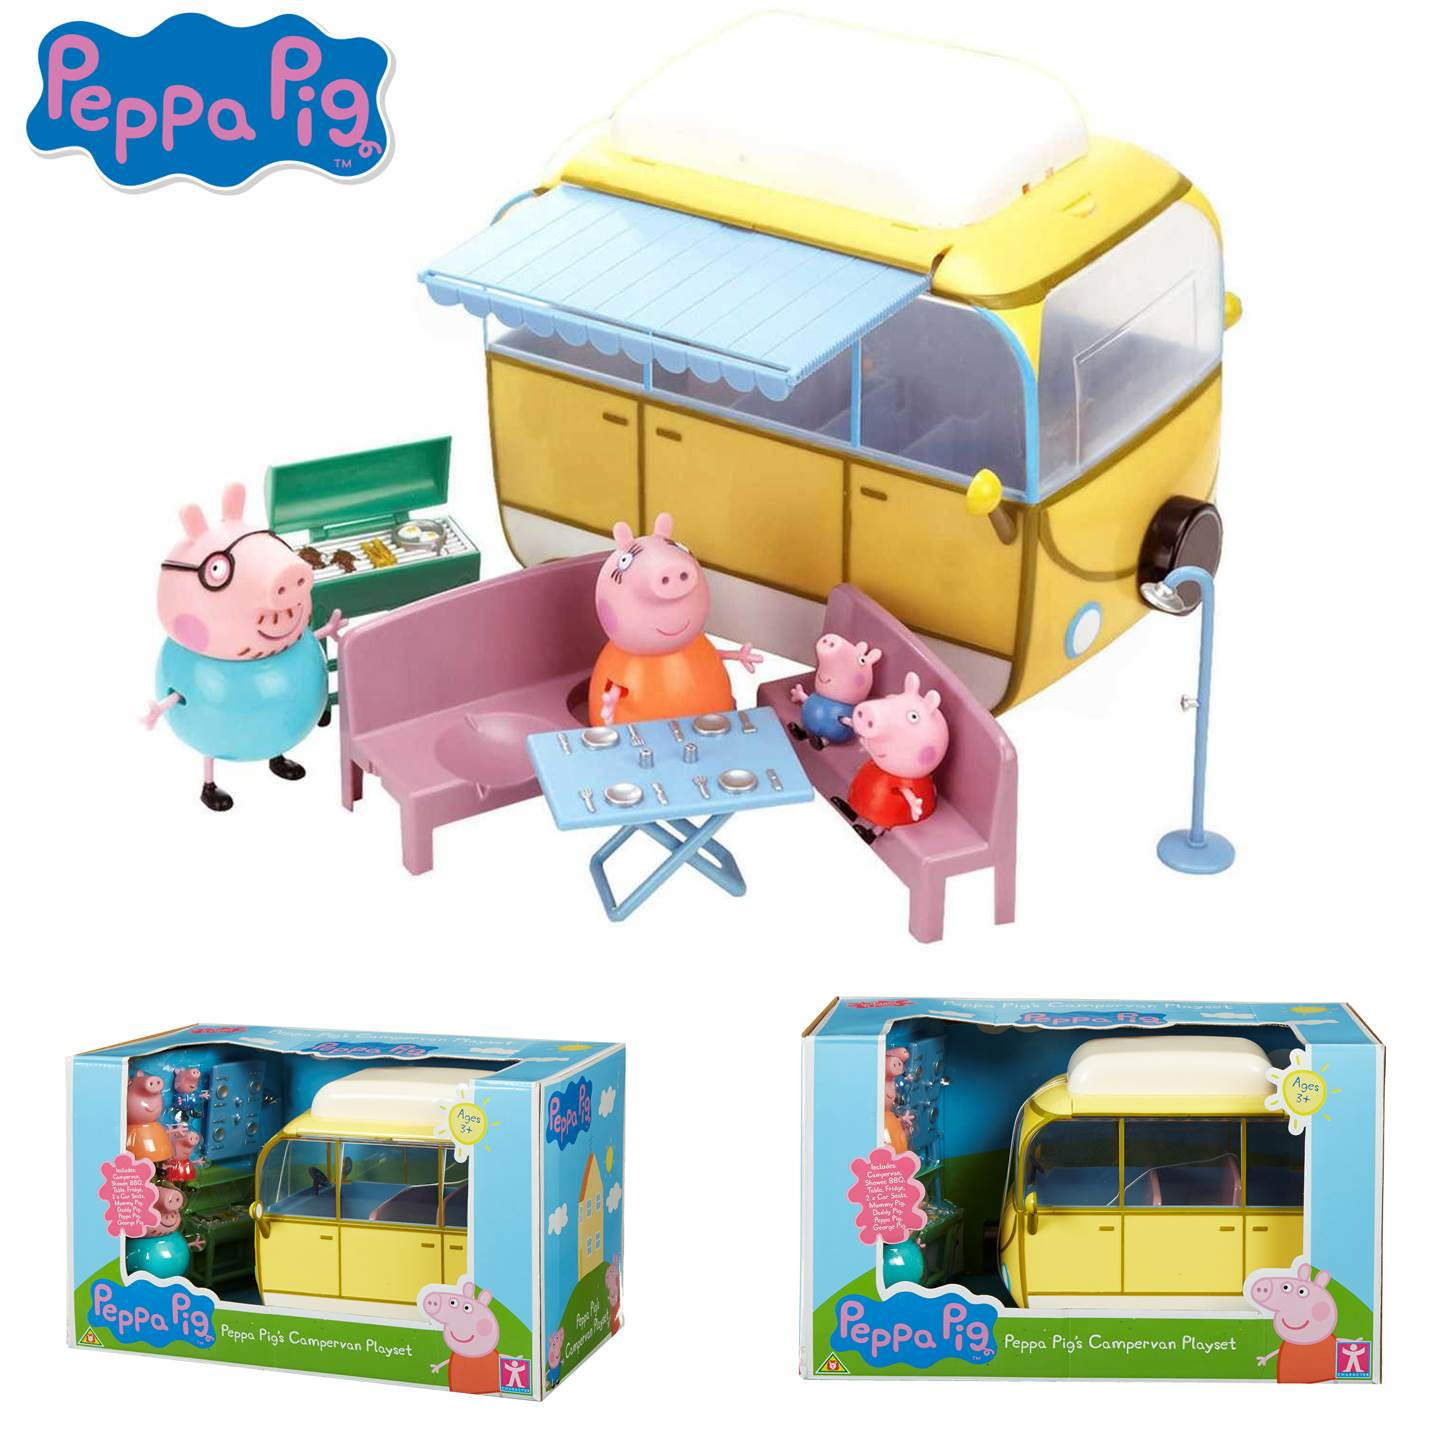 PP120533200000 Peppa Pig Campervan Play Set (5)